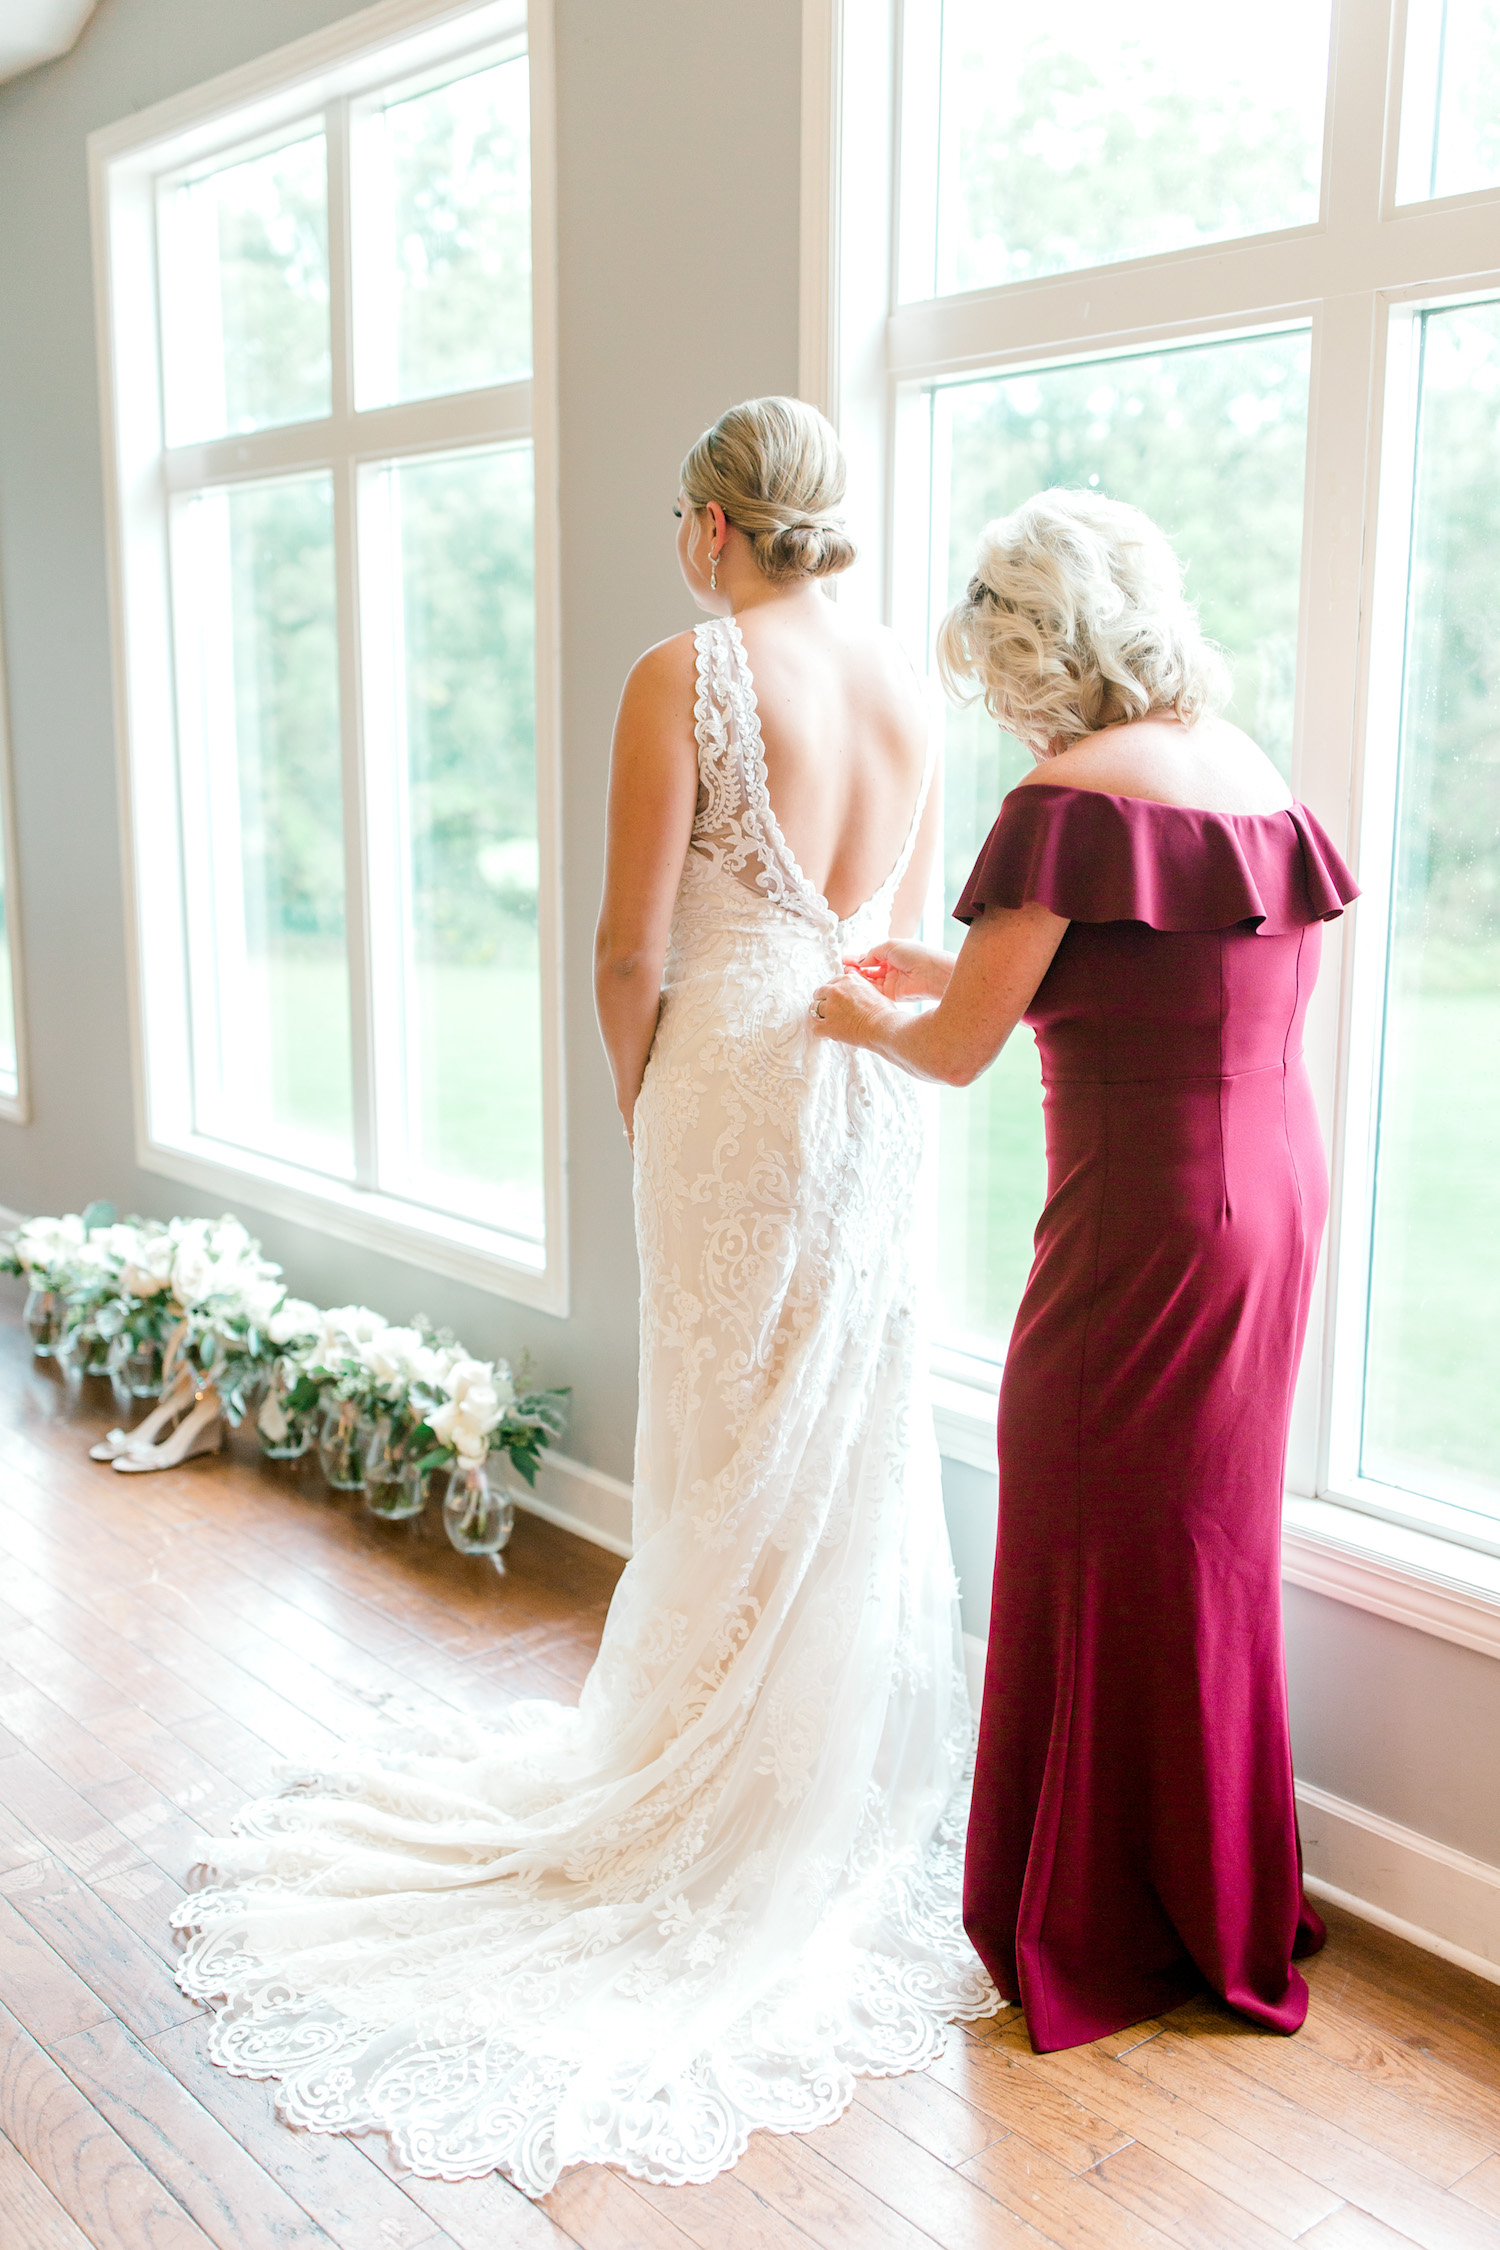 Mother of bride buttoning brides gown